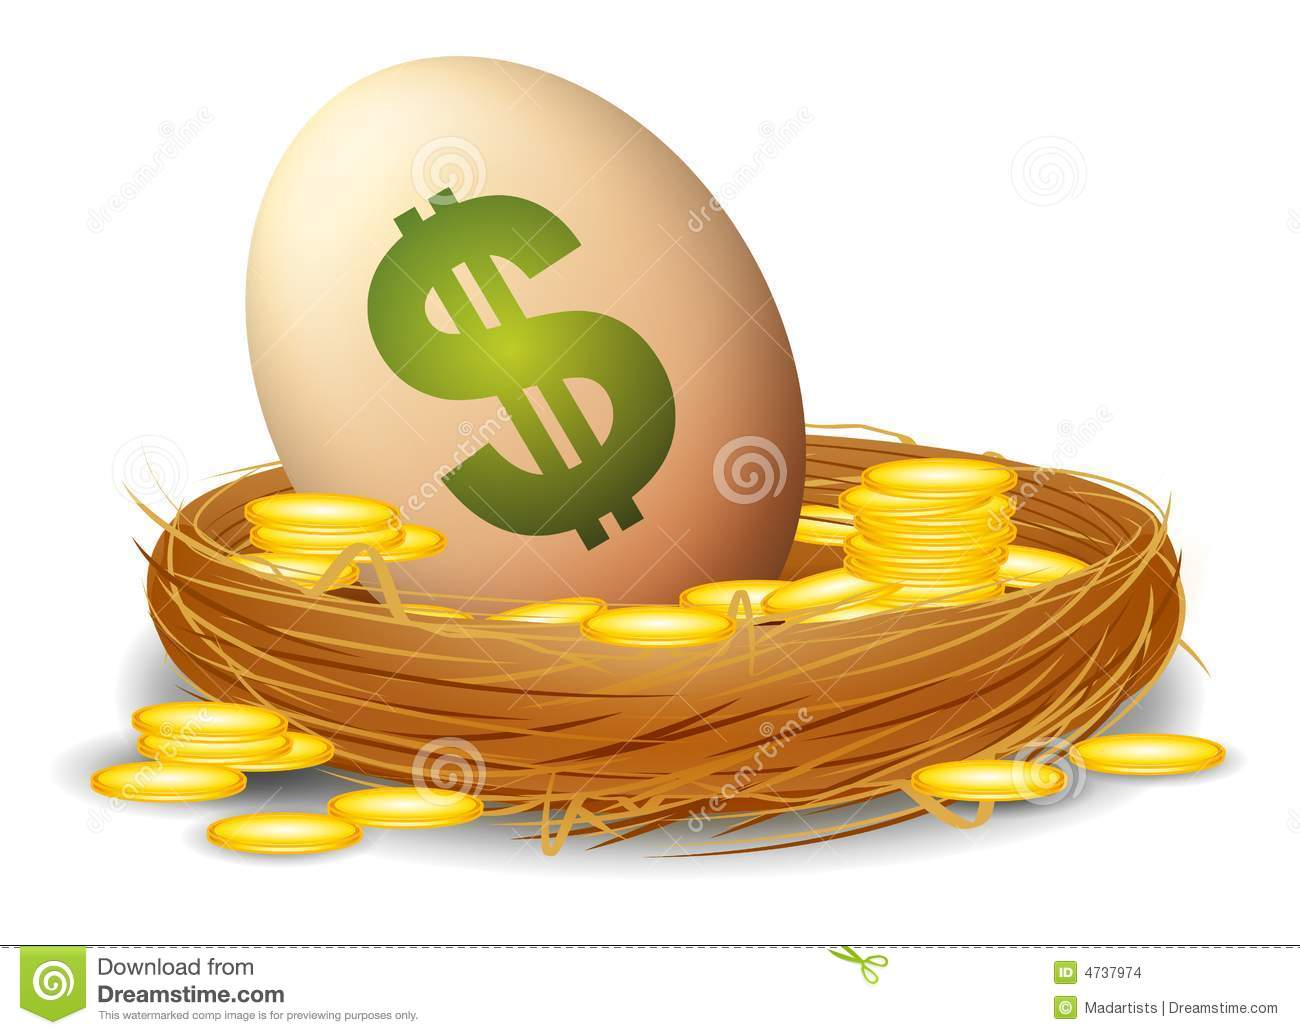 An illustration featuring an egg with a dollar sign sitting in a bird ...